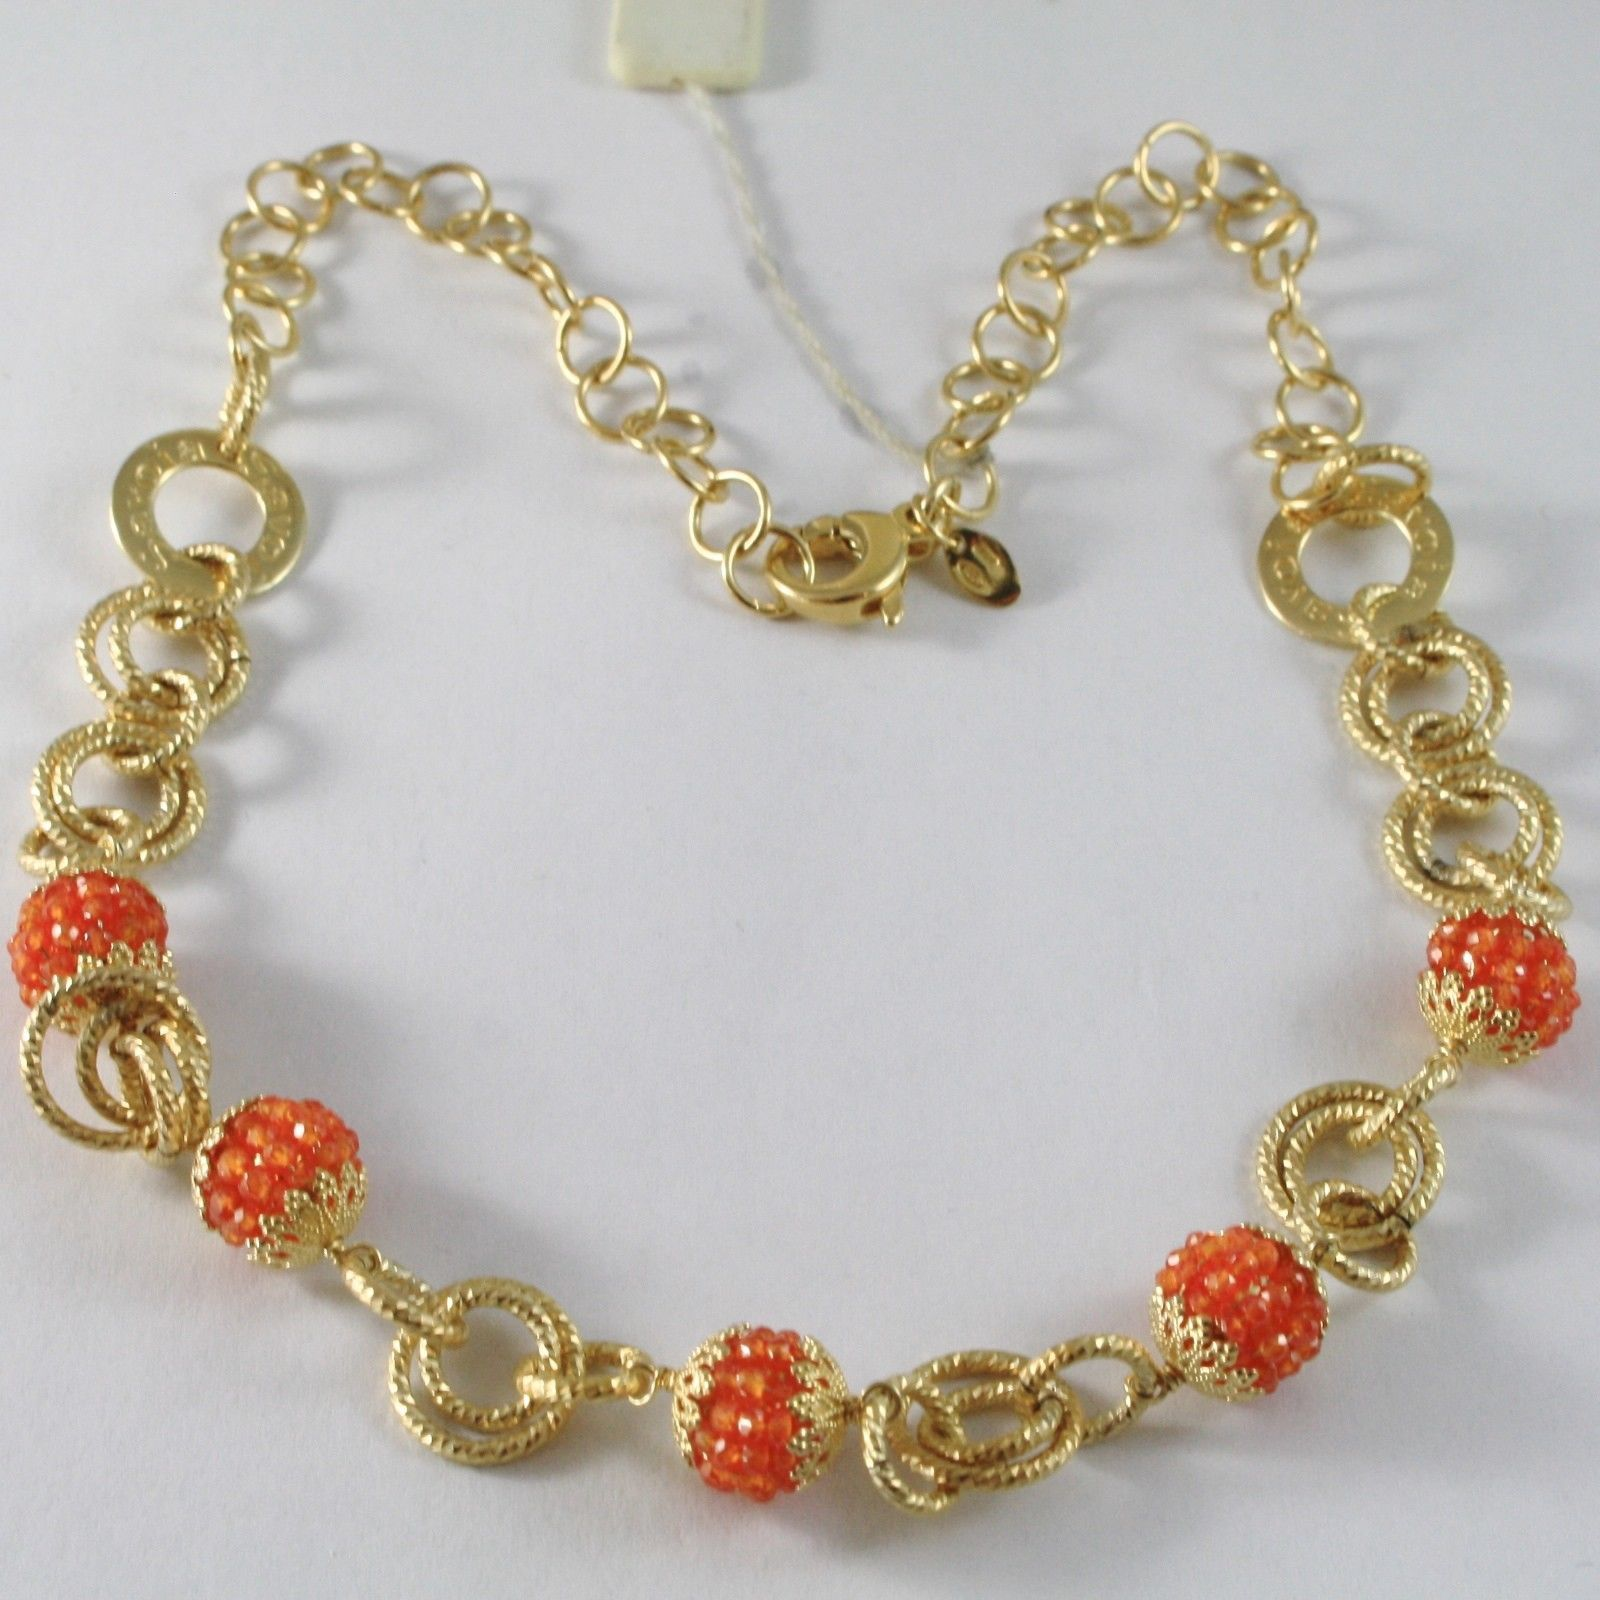 925 STERLING SILVER SAVOIA NECKLACE WITH CARNELIAN FINELY WORKED BALLS & CIRCLES